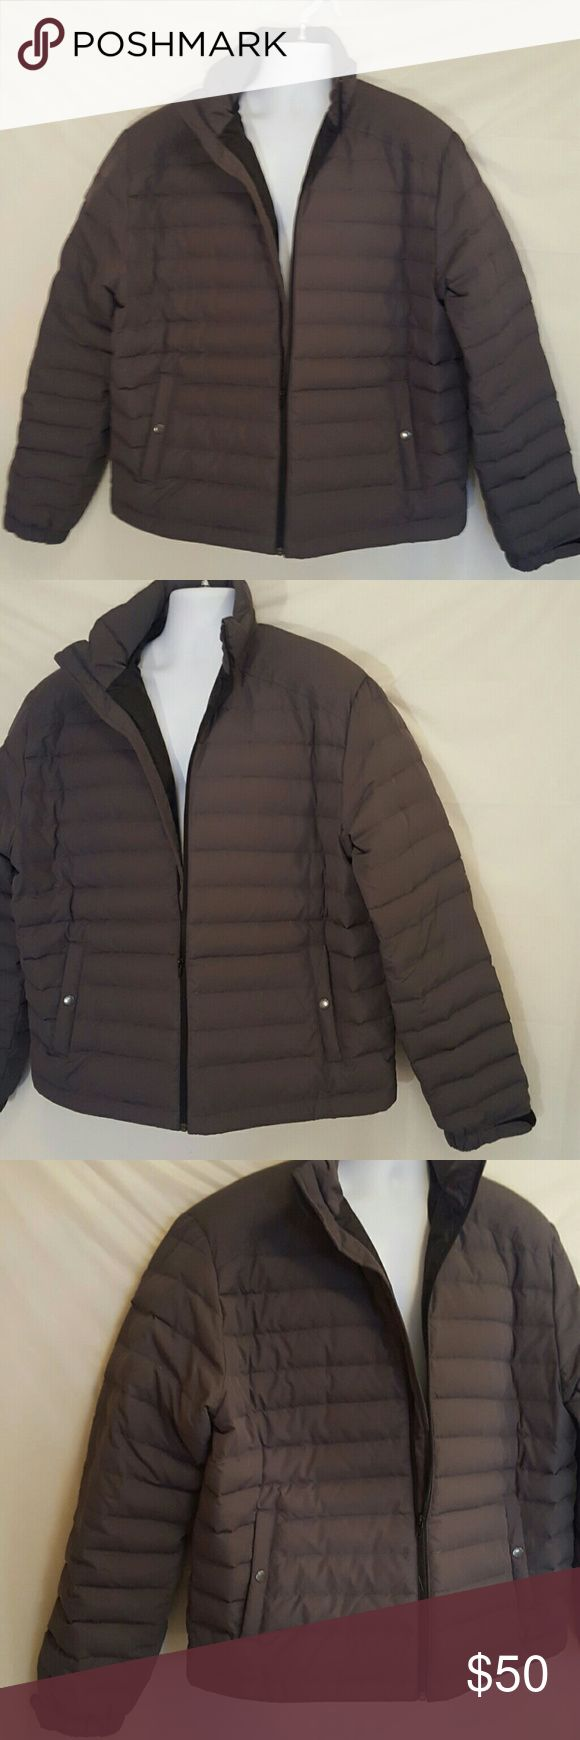 J Crew New York Men's Unisex Goose down jacket XL J Crew New York Goose down jacket Puffer  XL grey.. Nicely insulated inside one side pocket in the inside J. Crew Jackets & Coats Performance Jackets